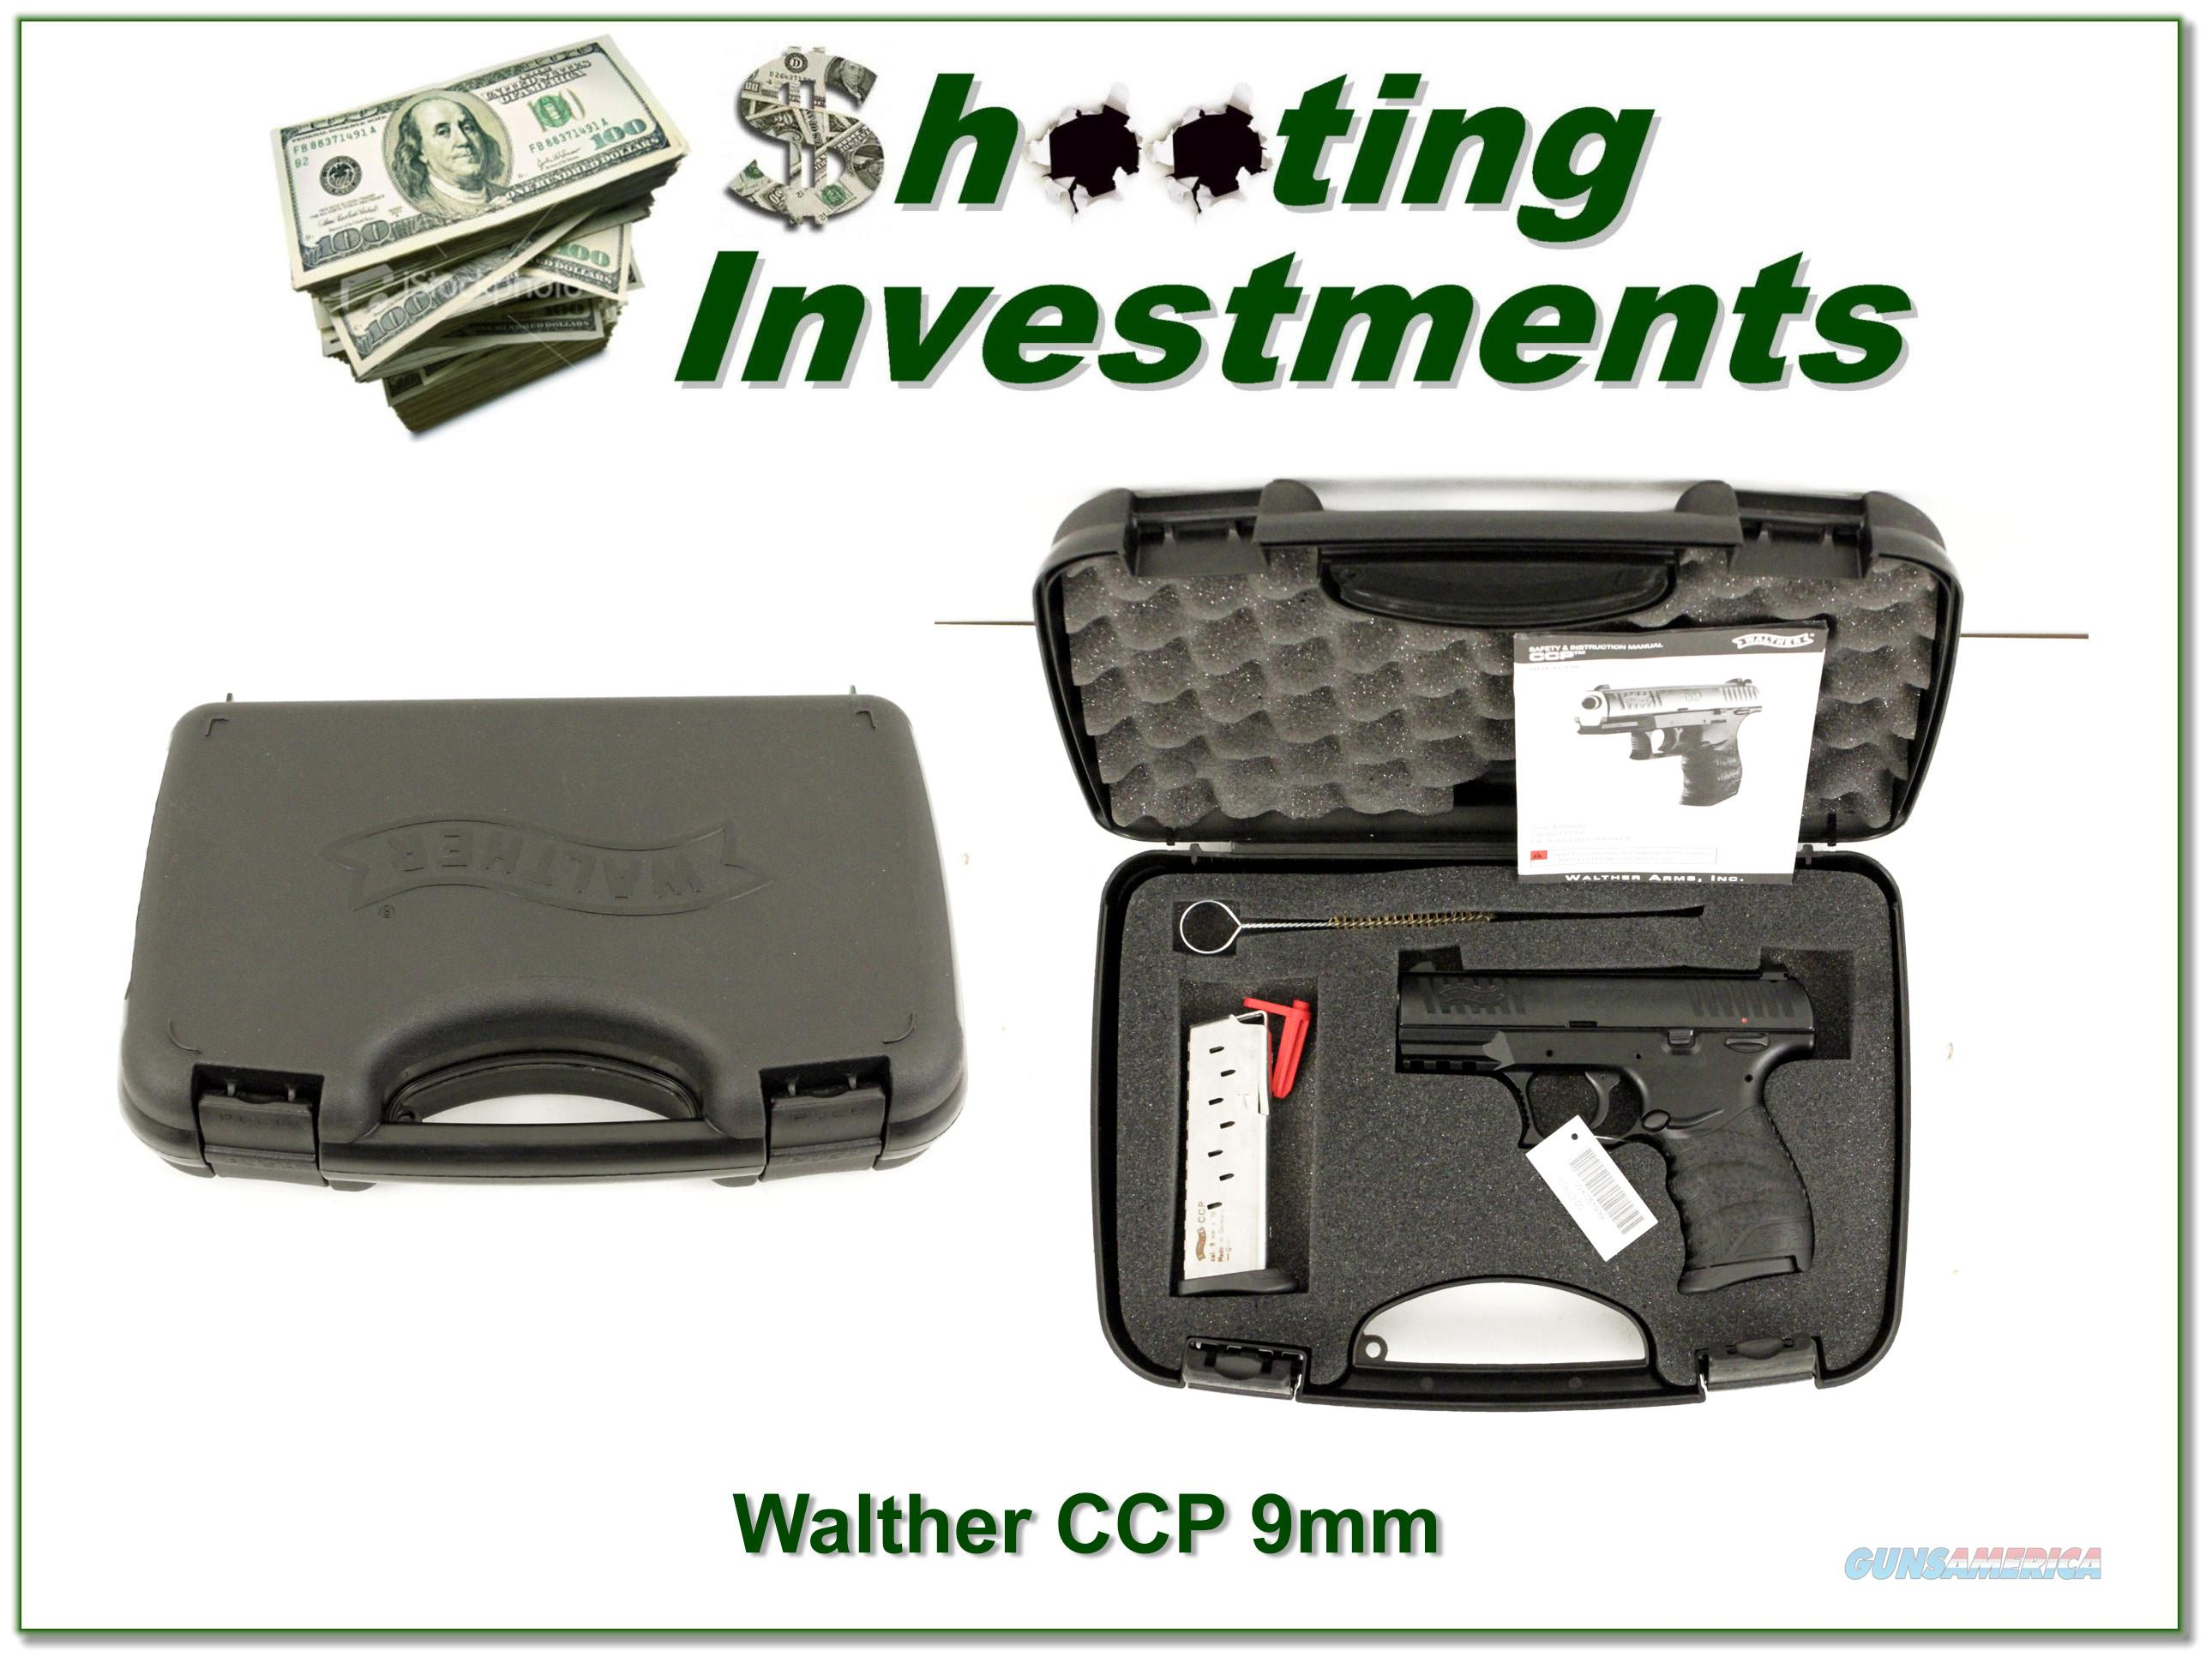 Walter CCP 9mm new, unfired with case, papers and 2 magazines  Guns > Pistols > Walther Pistols > Post WWII > CCP